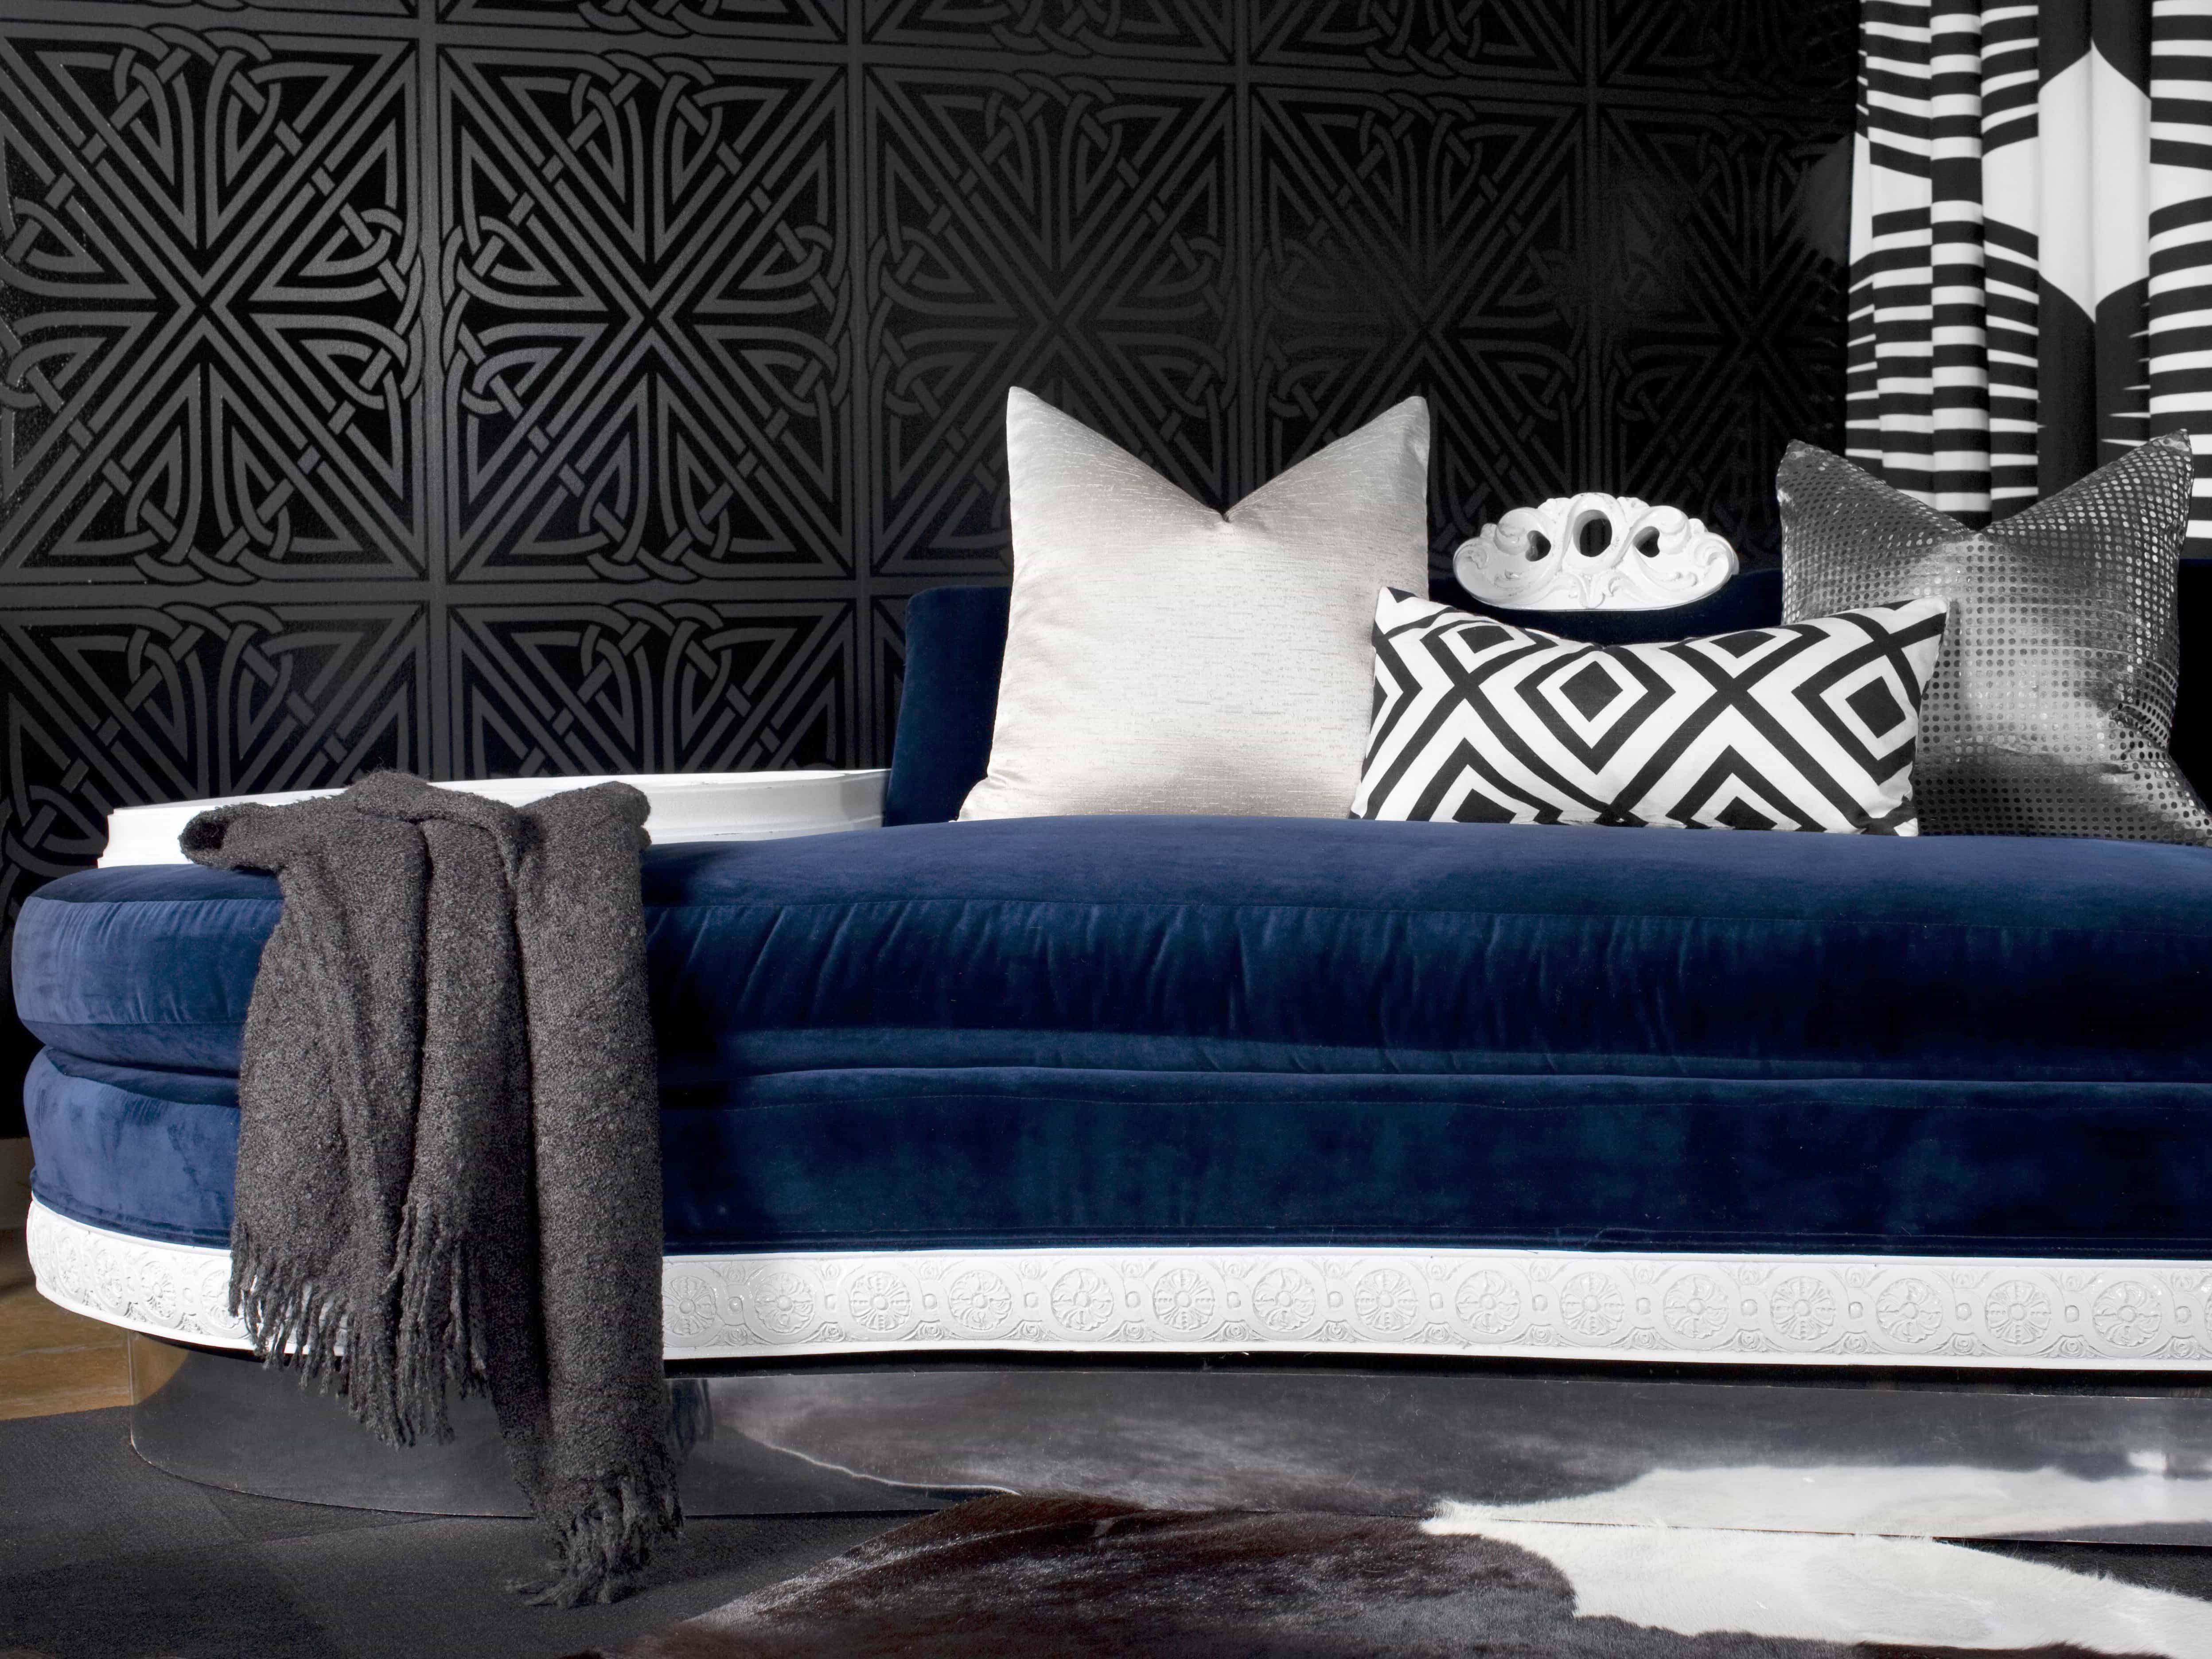 Featured Image of Contemporary Blue Settee And Graphic Black Wallpaper